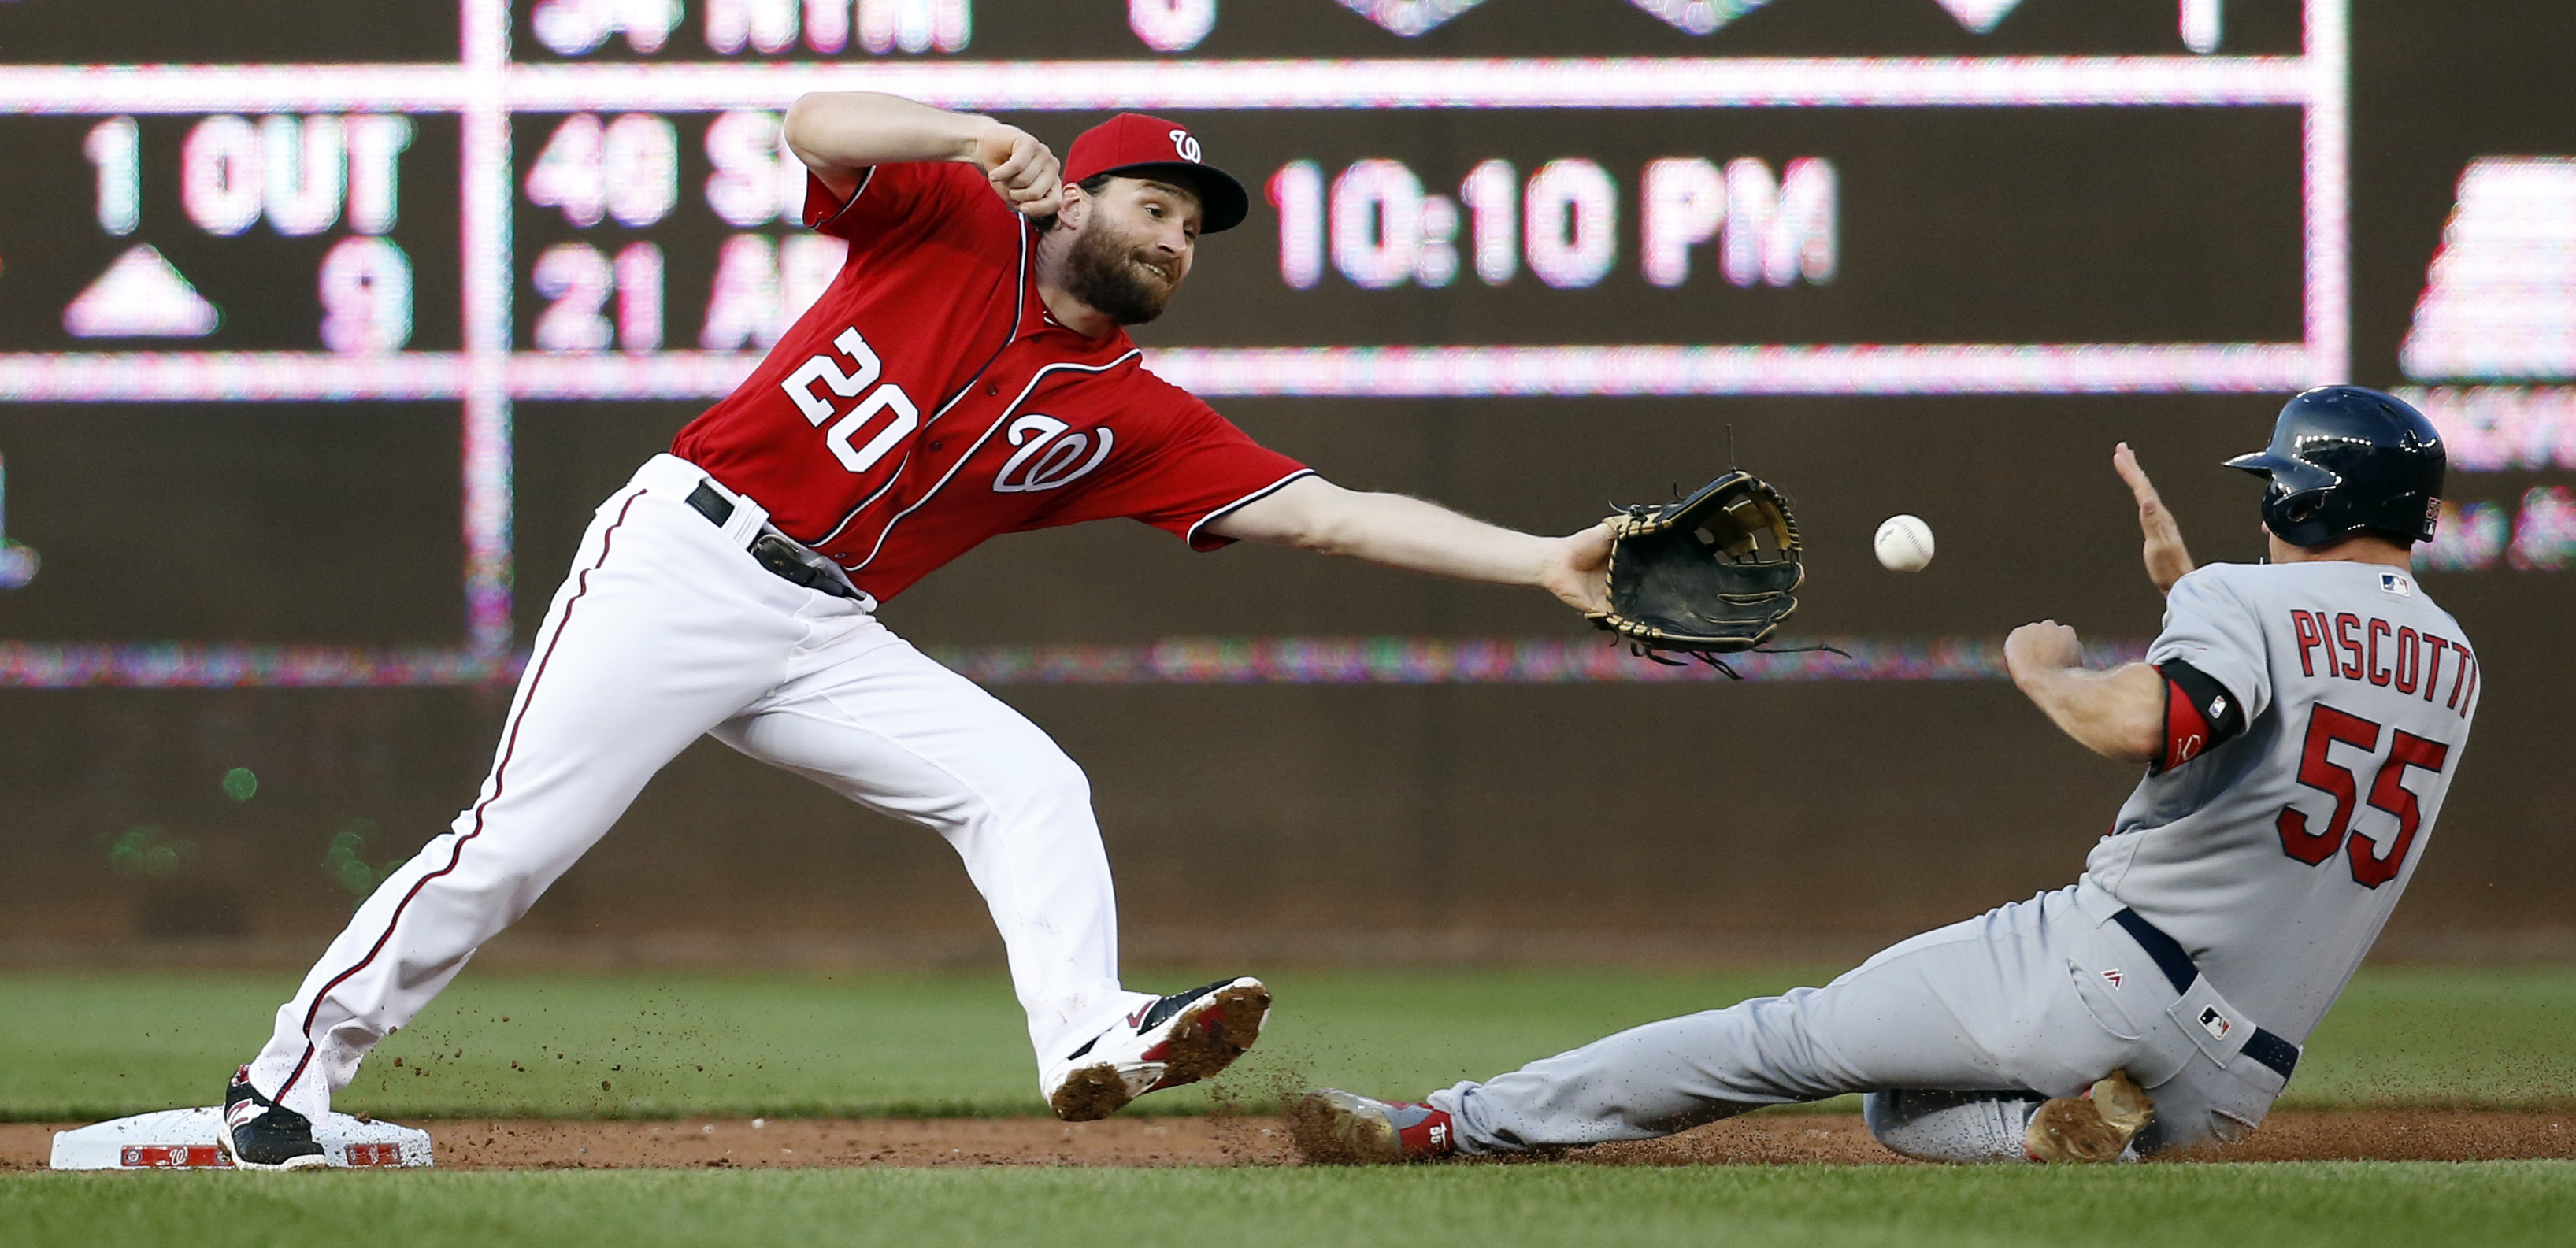 St. Louis Cardinals' Stephen Piscotty (55) safely steals second base as Washington Nationals second baseman Daniel Murphy (20) cannot get the throw in time during the second inning of a baseball game Saturday, May 28, 2016, in Washington. (AP Photo/Alex B